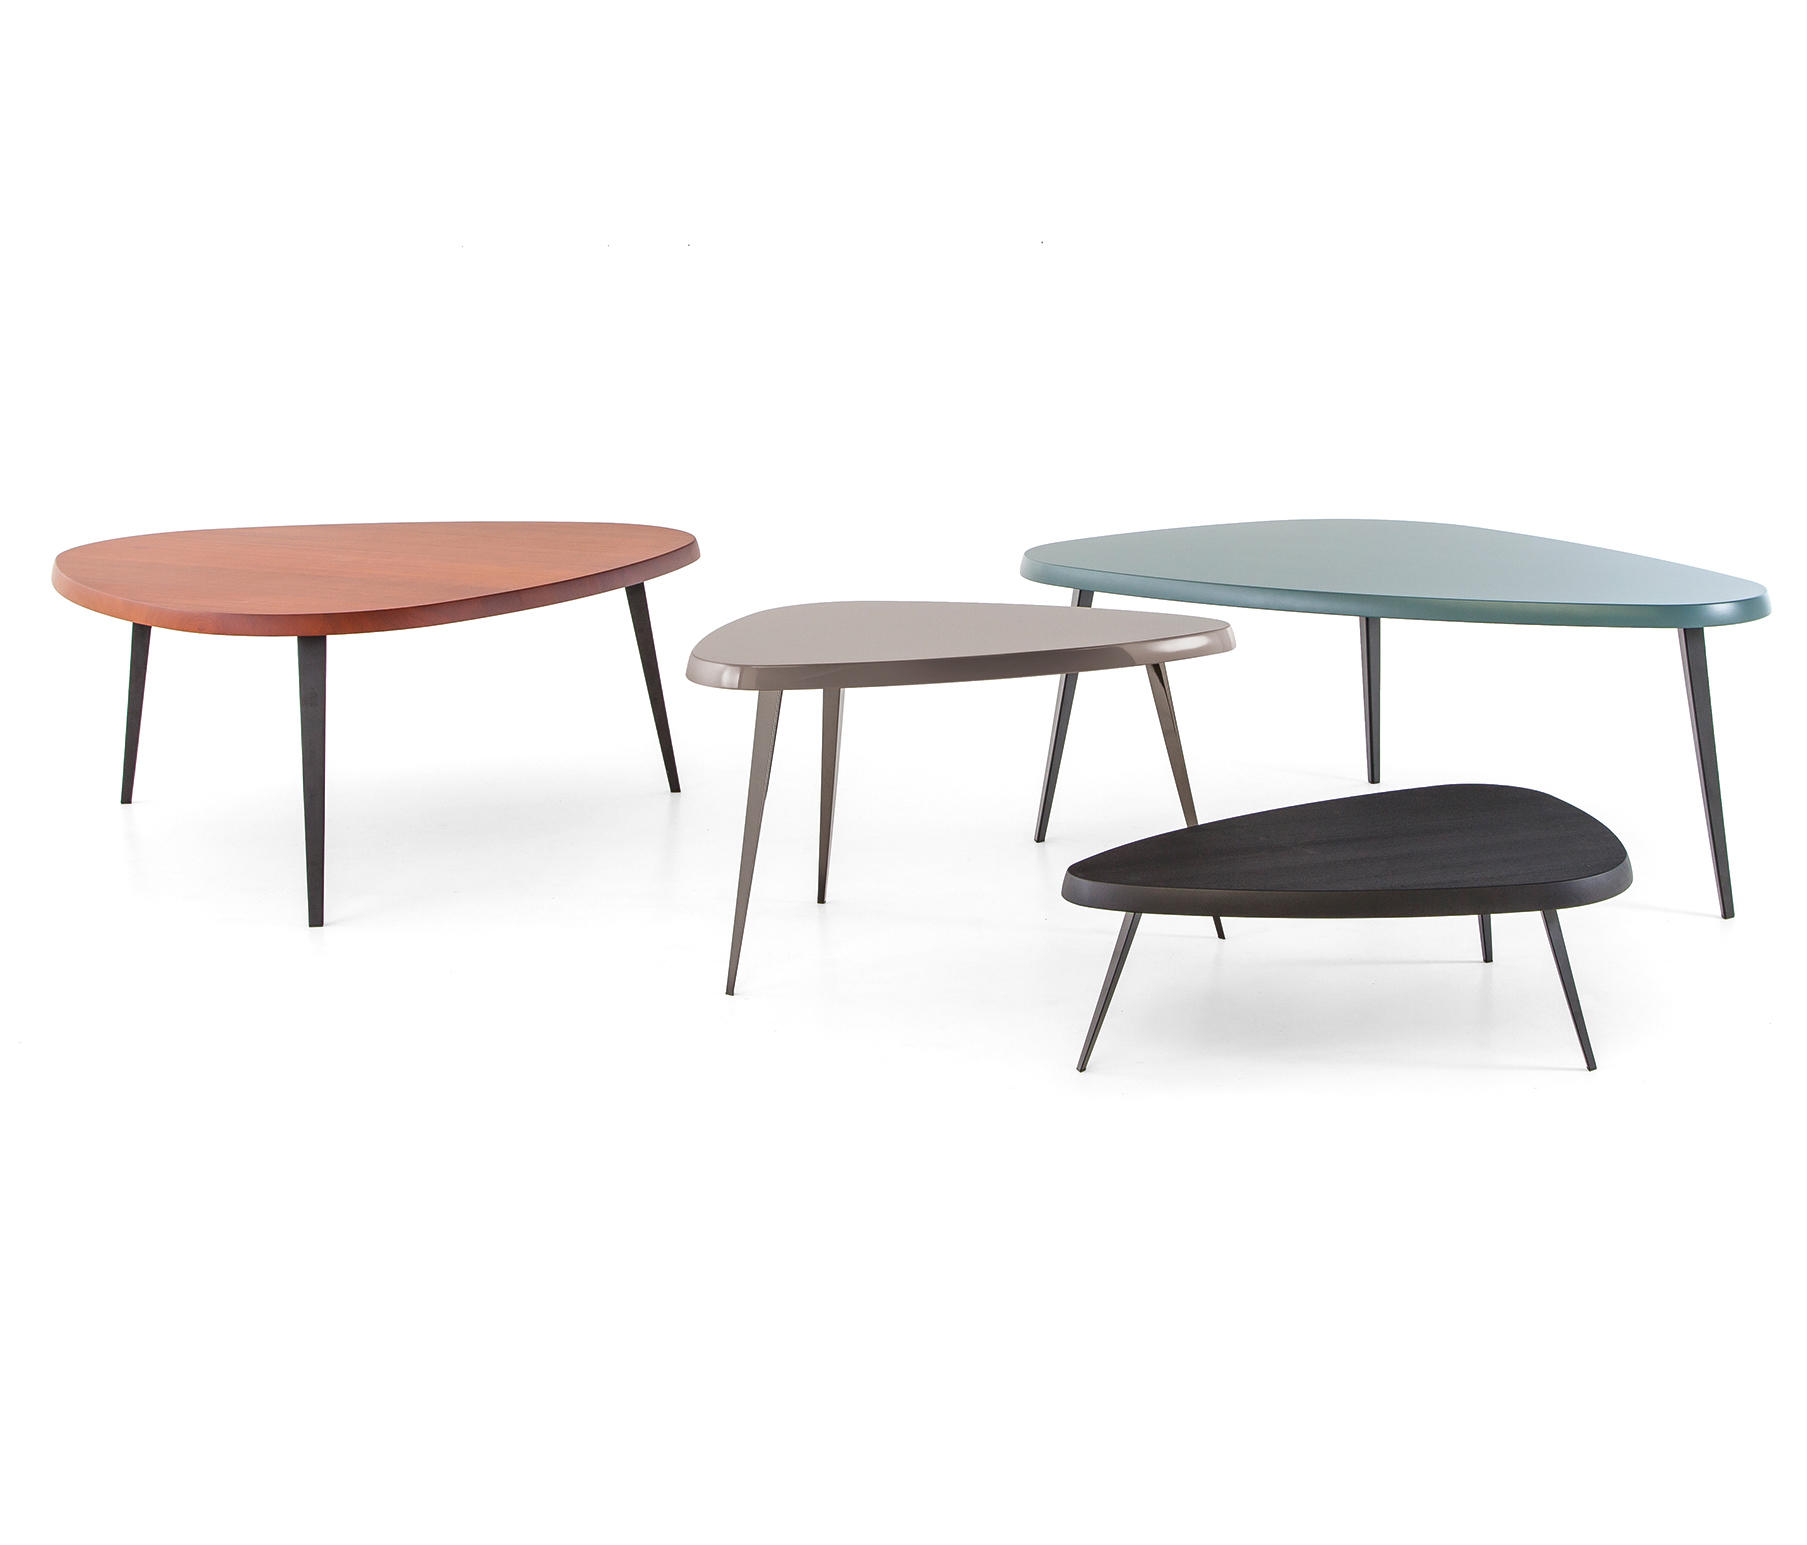 527 Mexique Dining Tables From Cassina Architonic